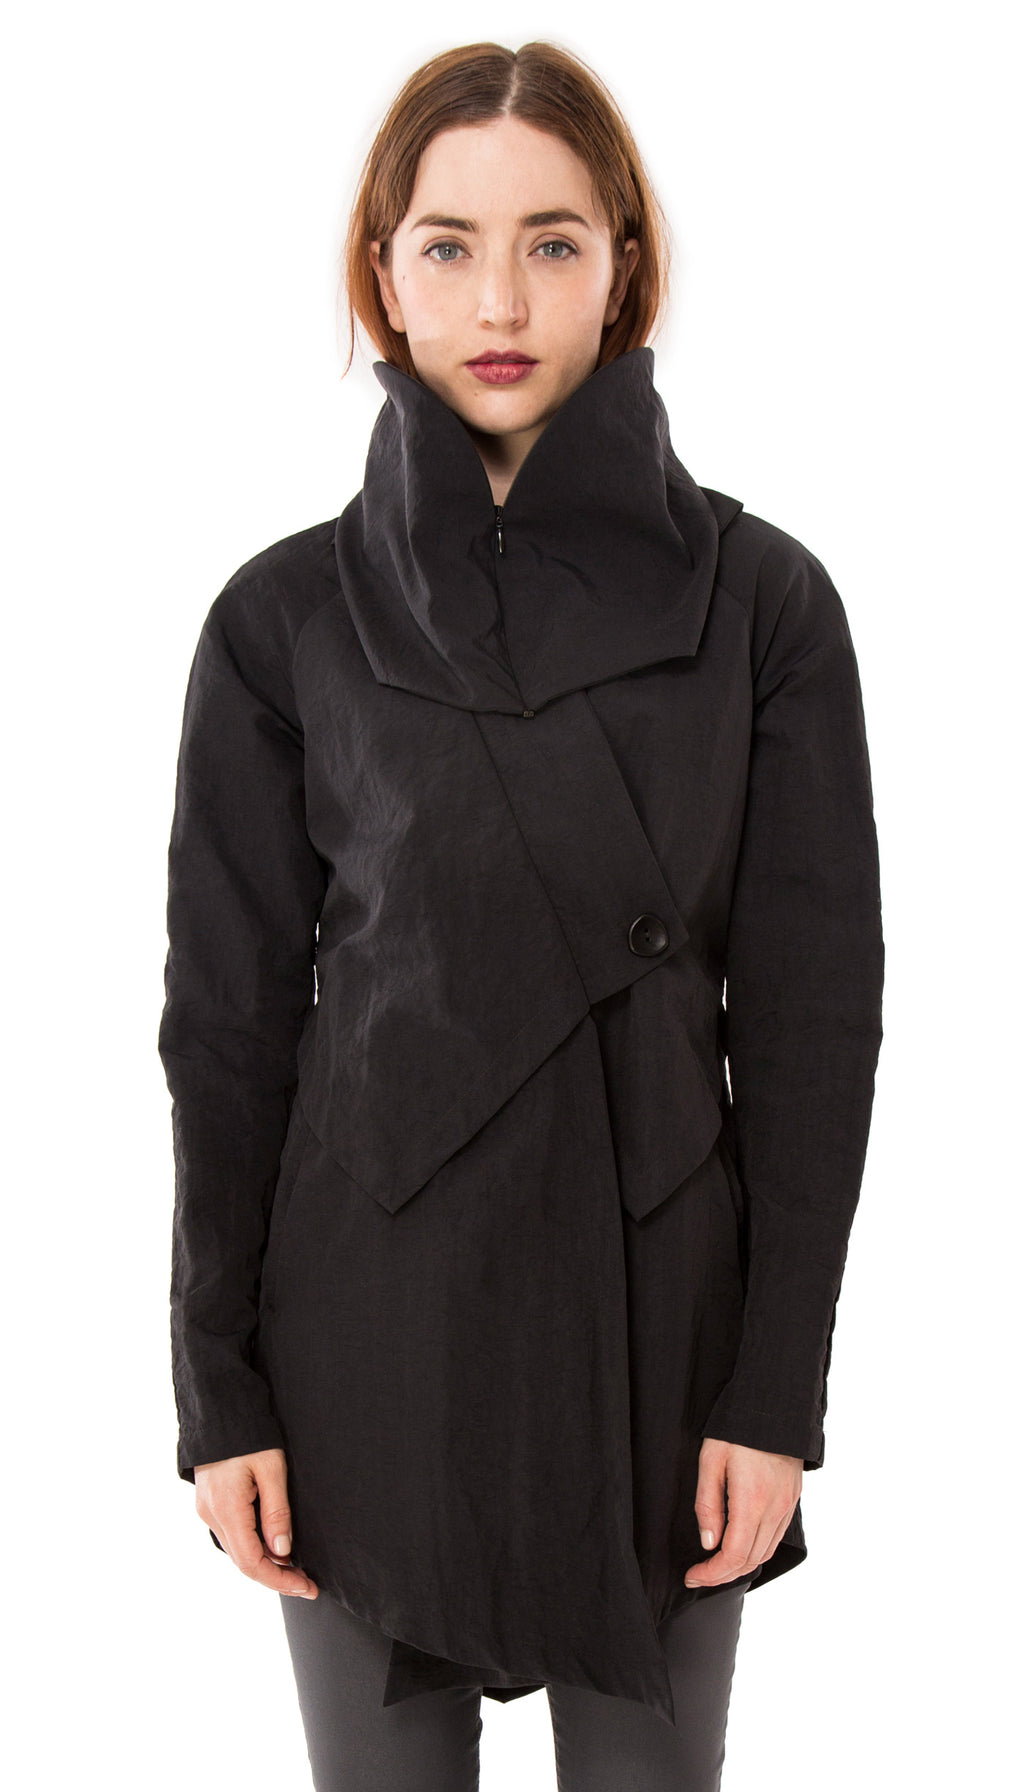 Convertible Hood Asymmetrical Rain Jacket/ Black